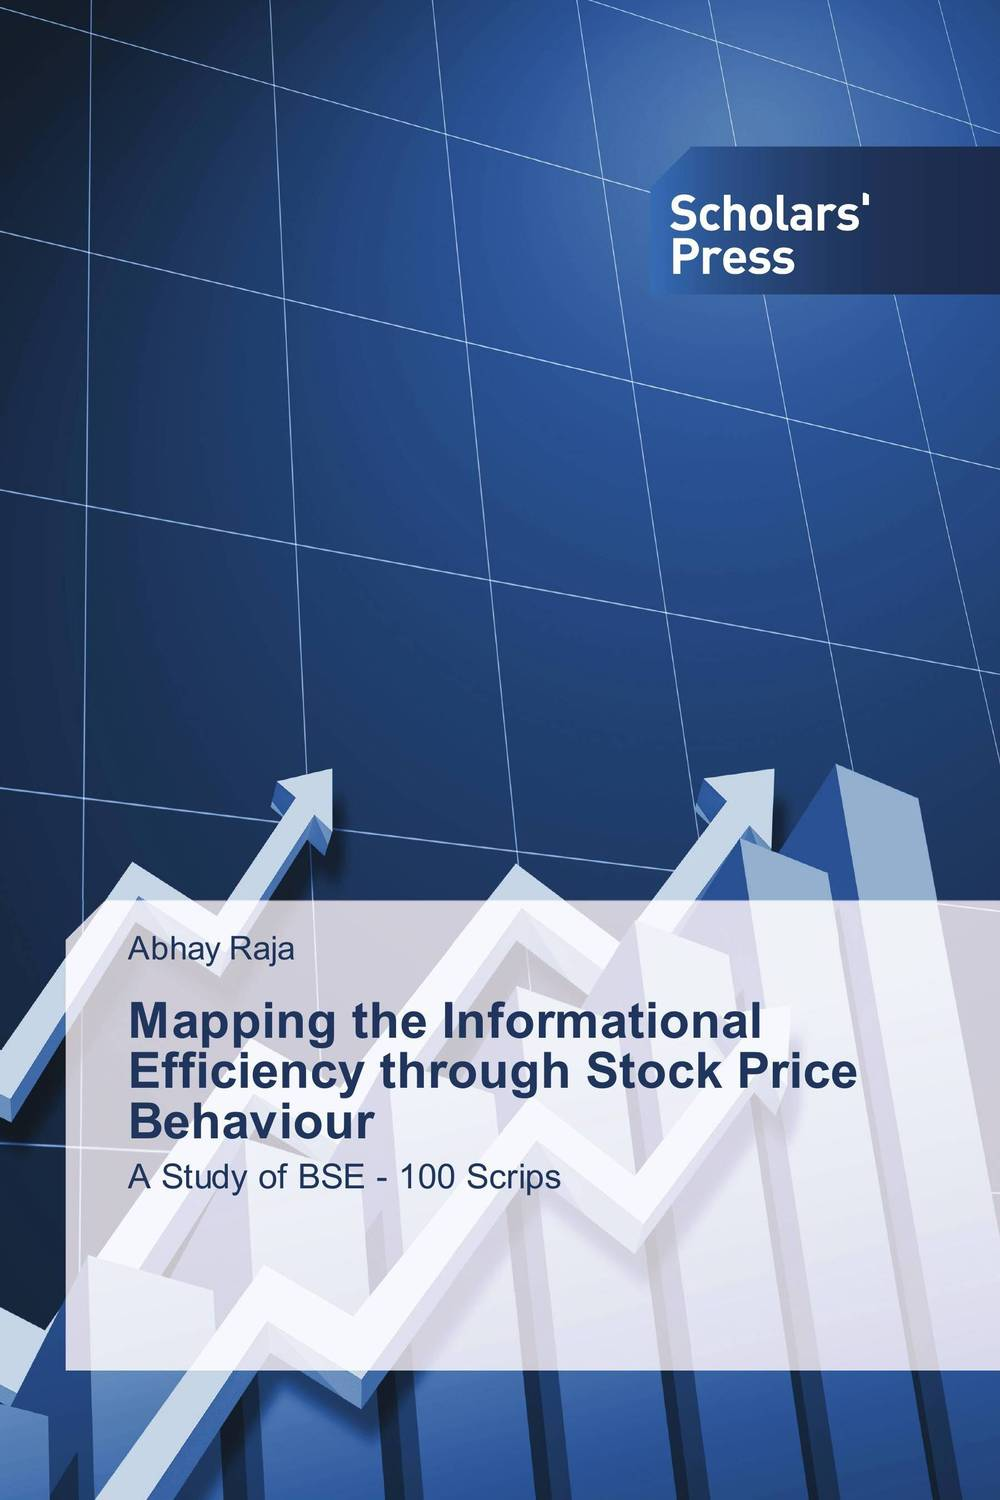 Mapping the Informational Efficiency through Stock Price Behaviour presidential nominee will address a gathering